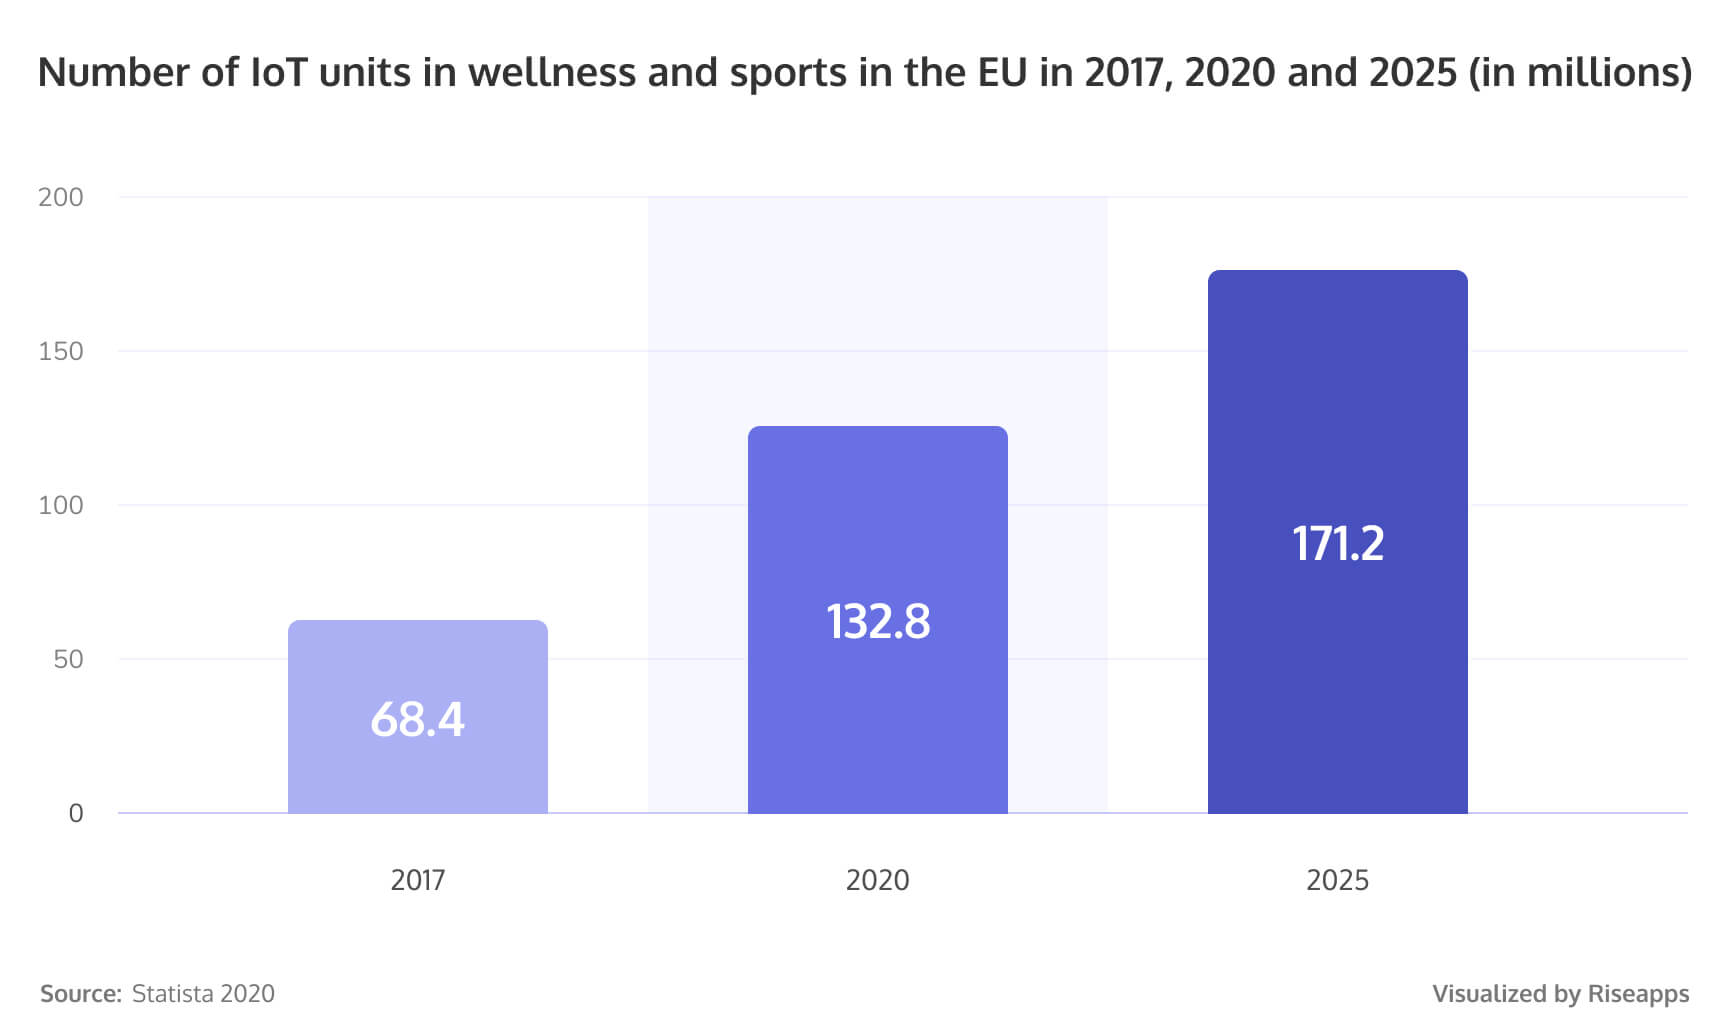 Number of IoT units in wellness and sports in the EU in 2017, 2020 and 2025 (in millions)